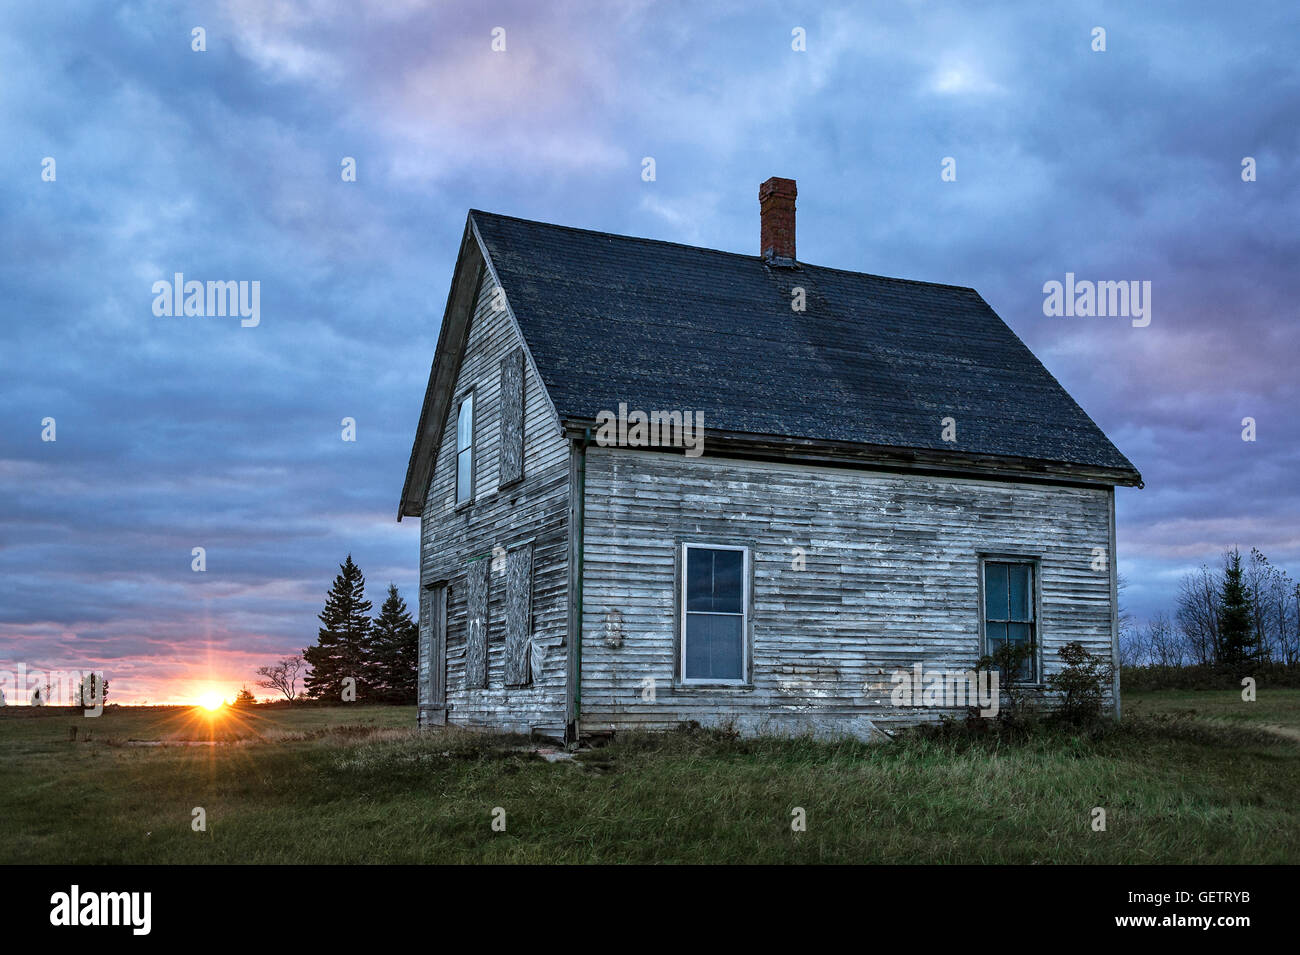 Abandoned house in disrepair. - Stock Image